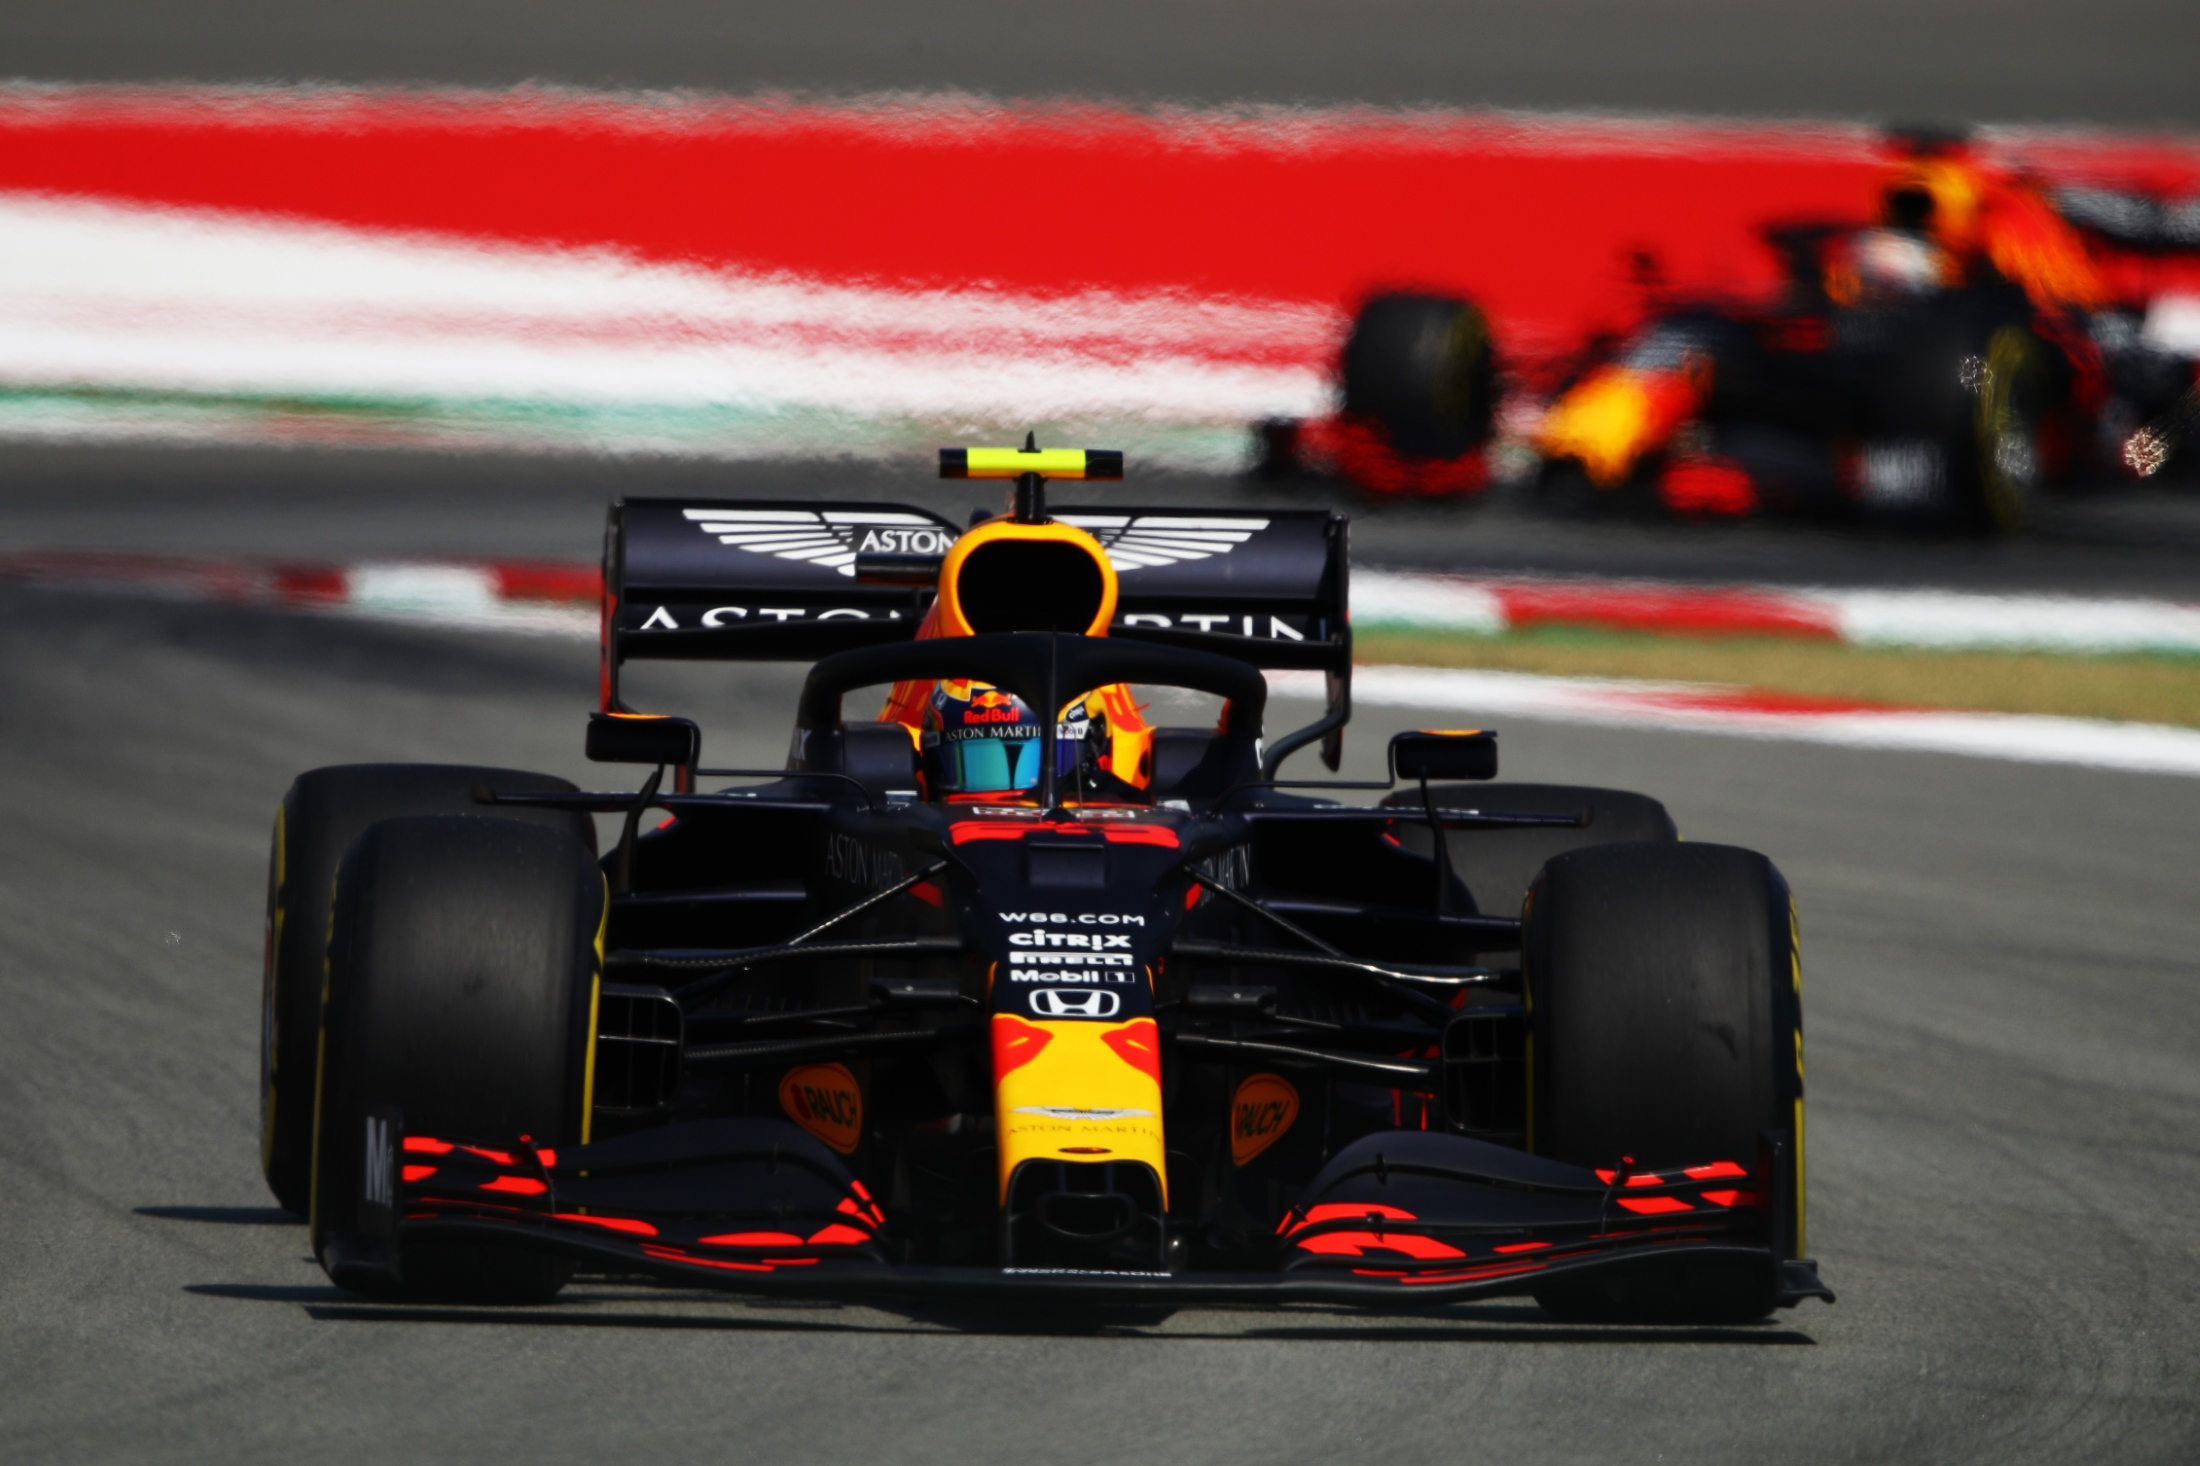 Red Bull encouraged by 'really competitive' long run pace in Spanish GP practice - Formula 1 RSS UK